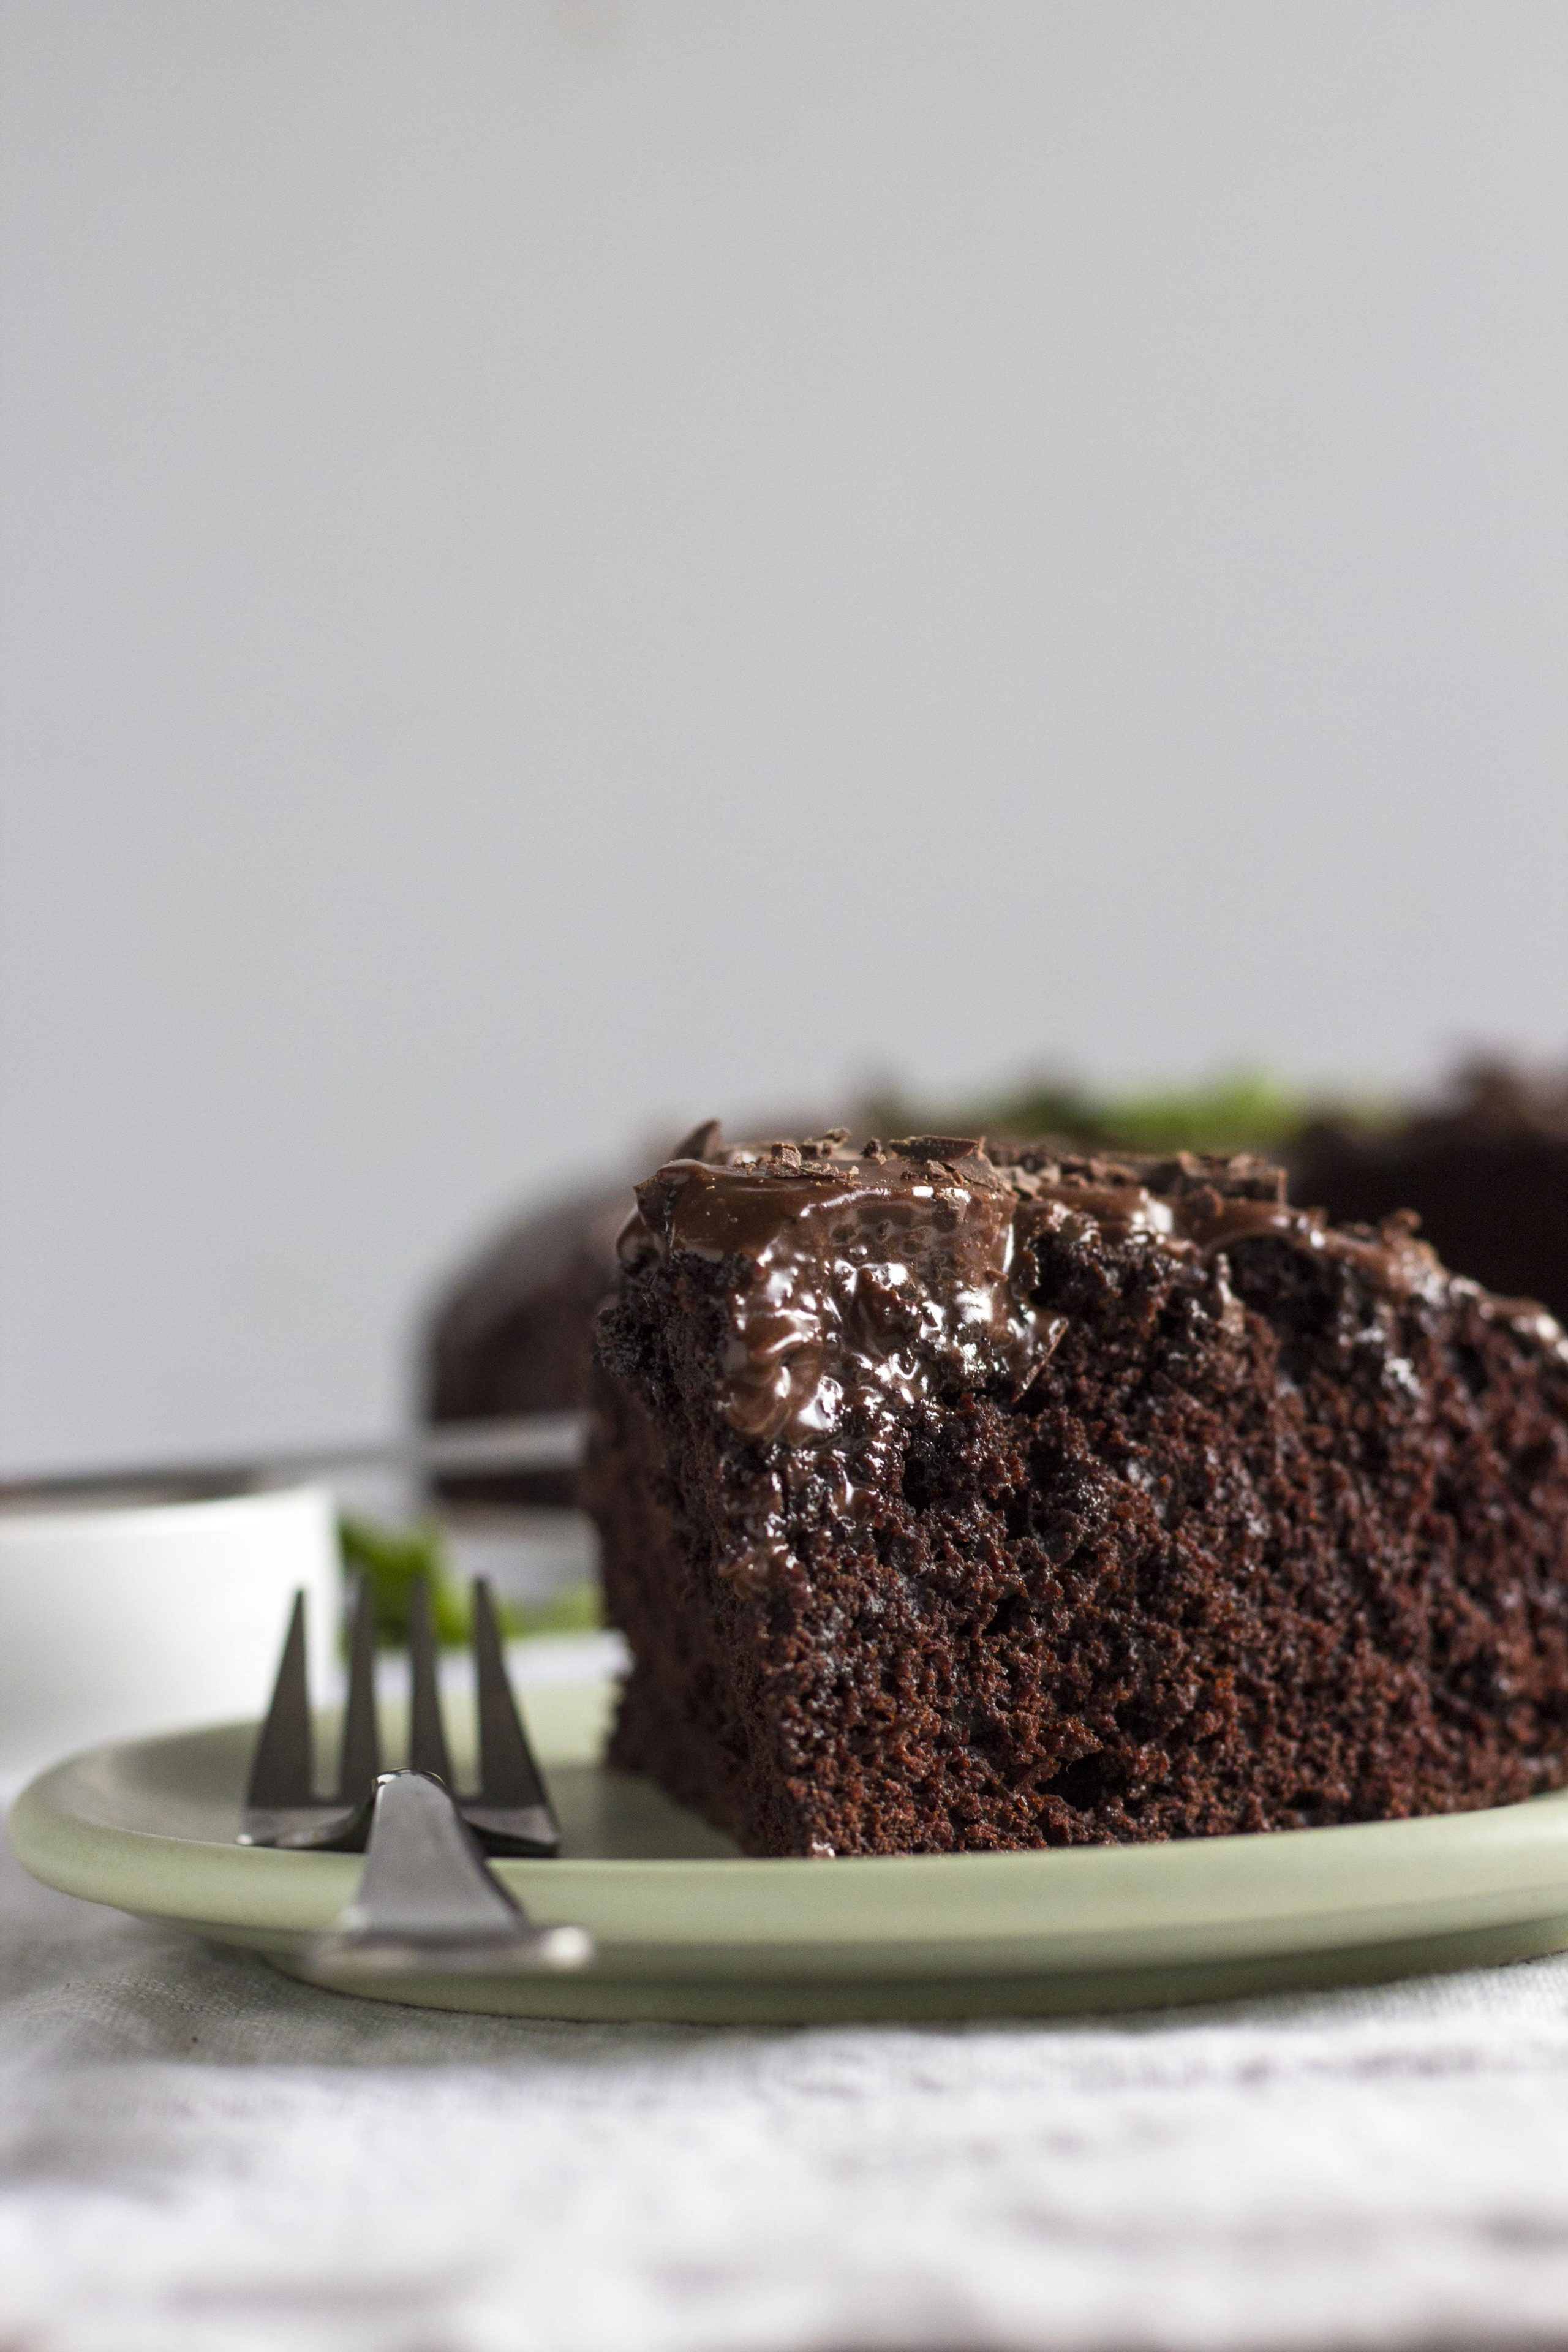 Chocolate Mint Cake | A healthier chocolate cake with a hint of mint that's dairy free, too!